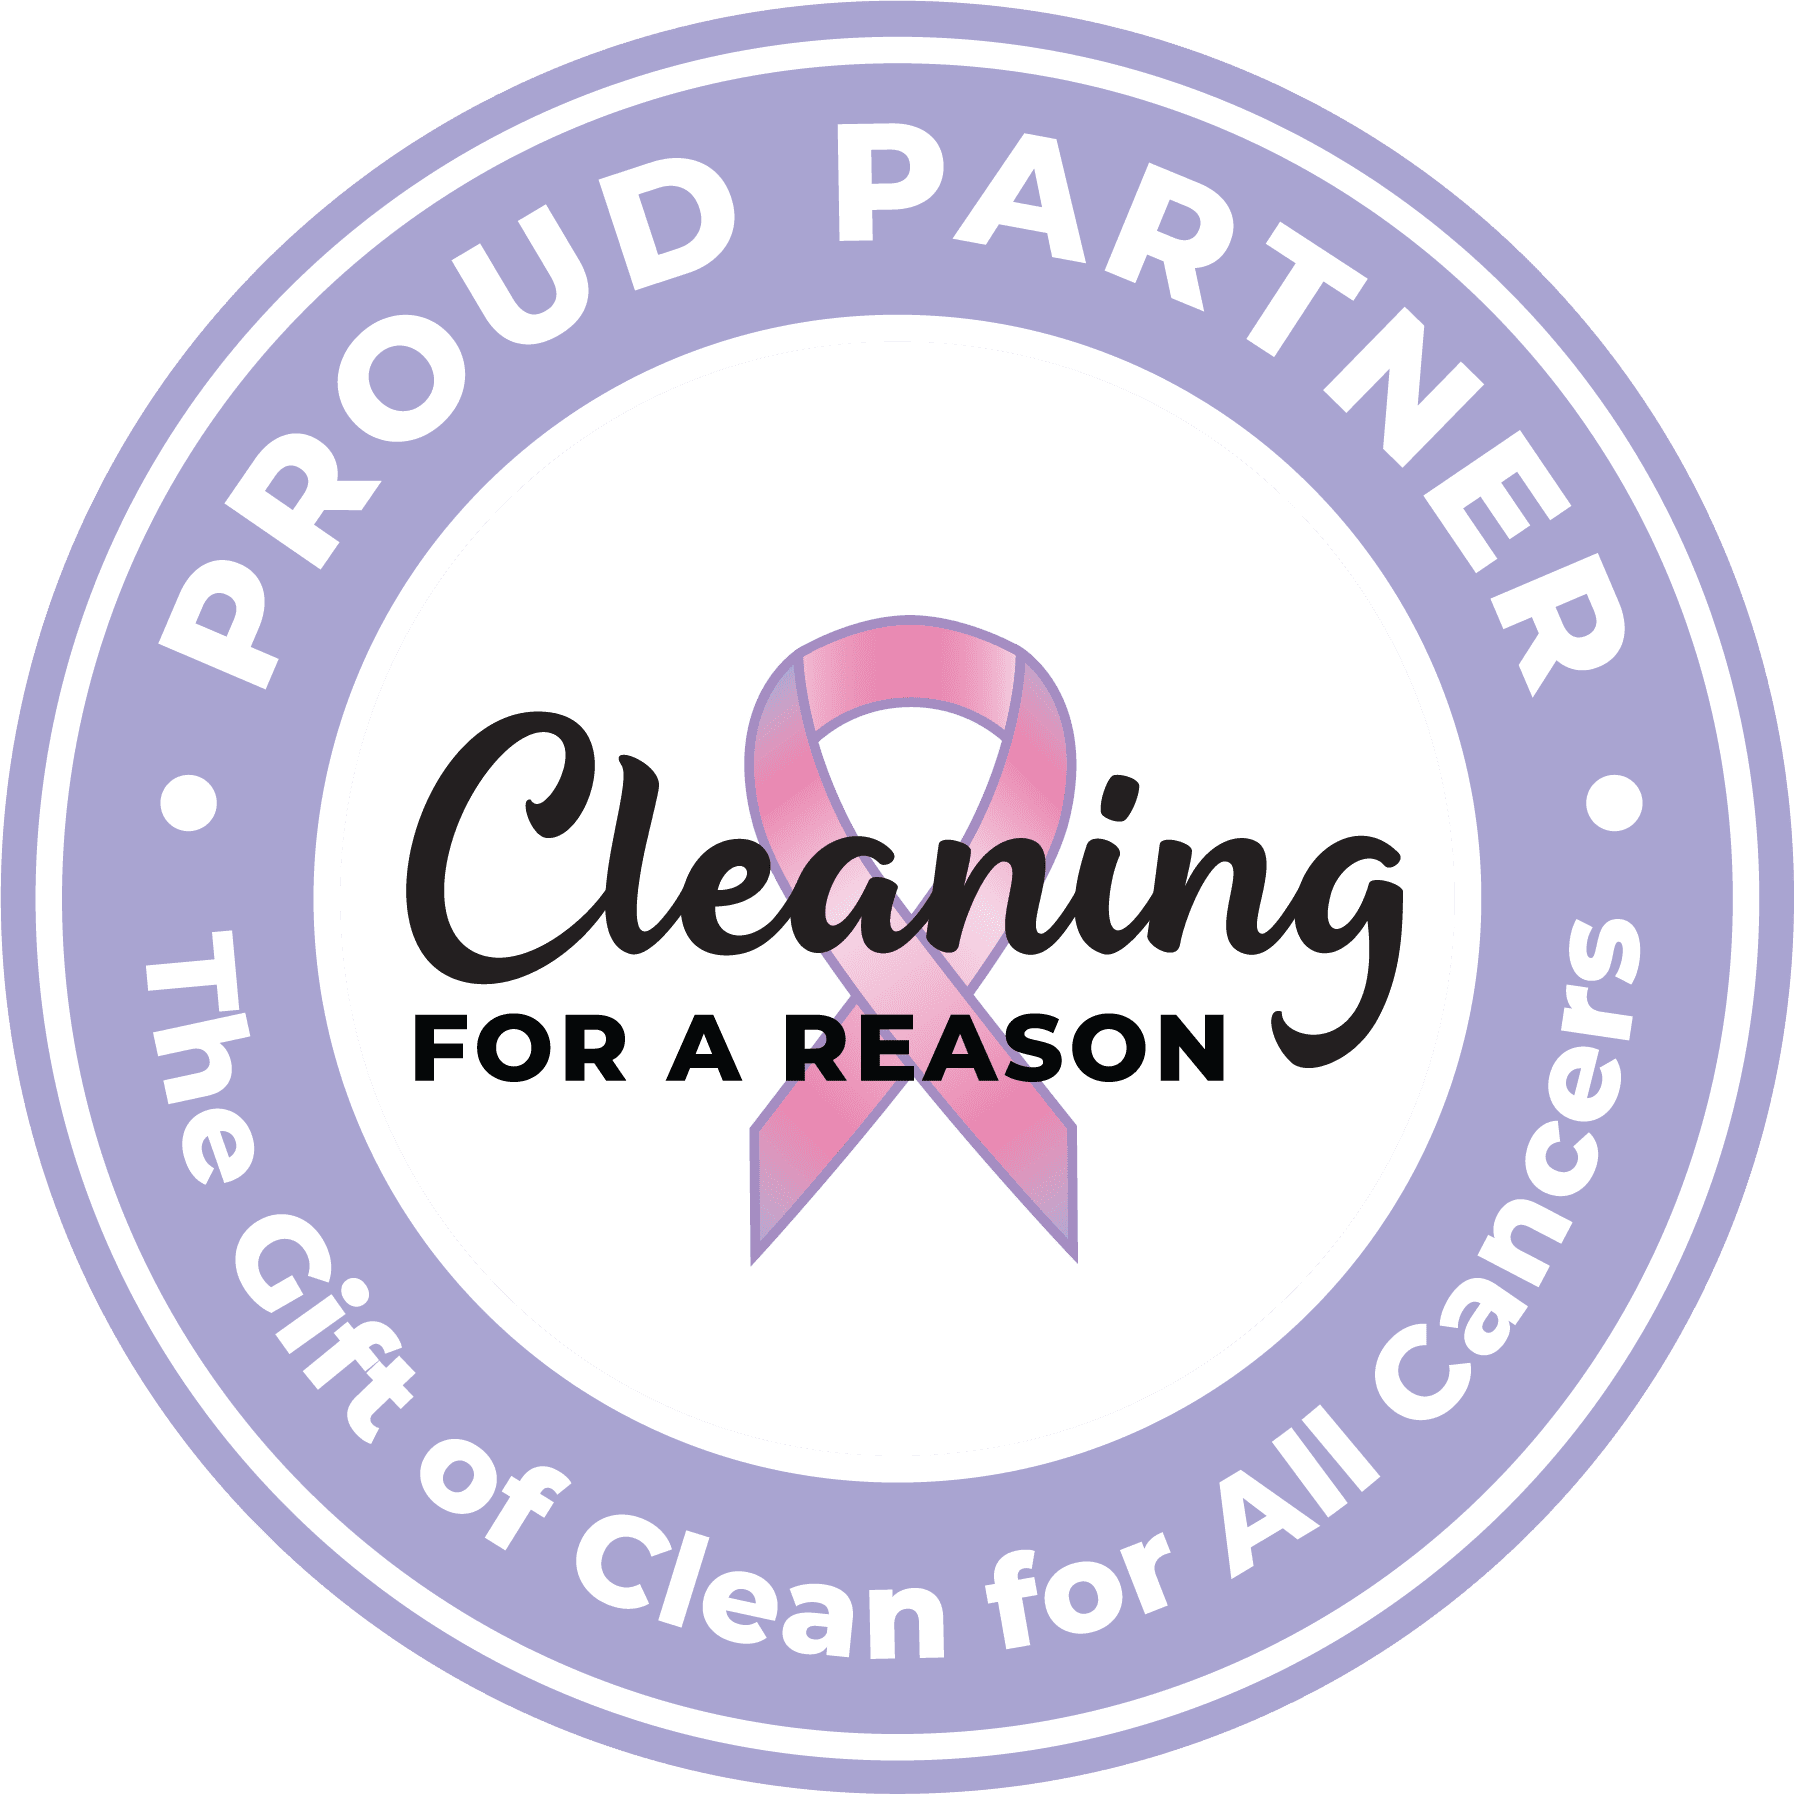 Primavera Cleaning - Cleaning for a Reason, Madison, WI